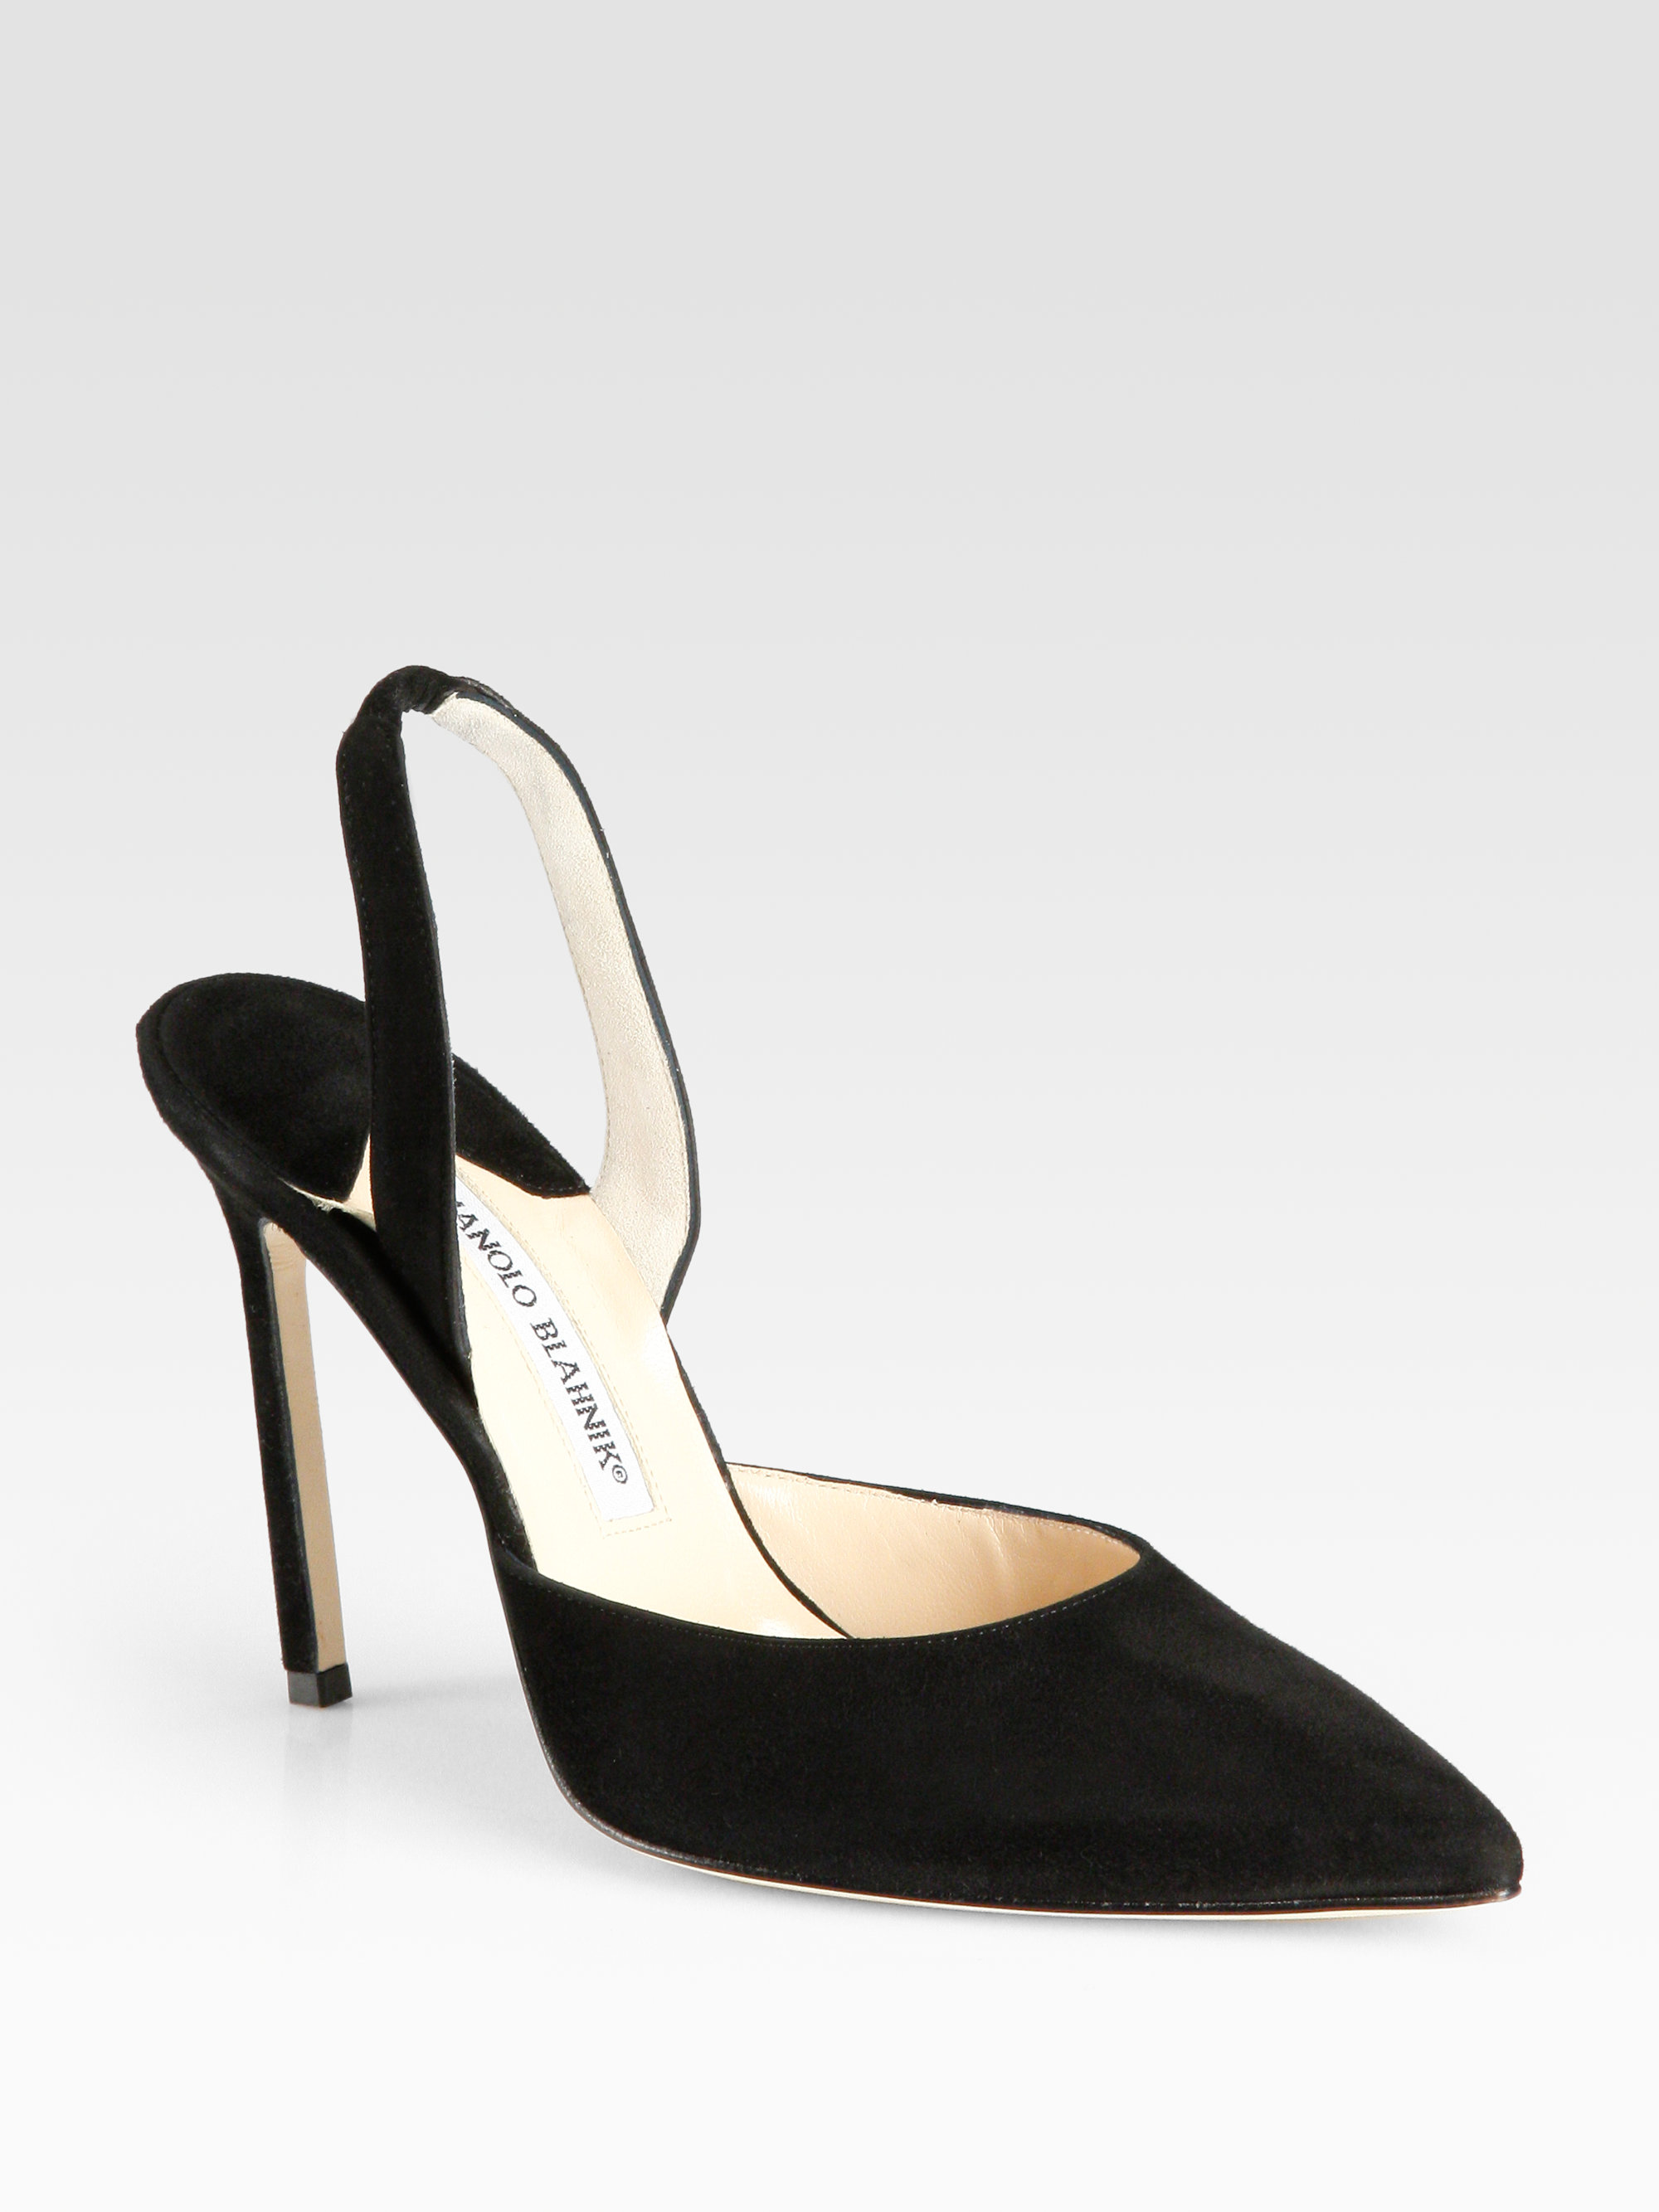 adb41898388c Lyst - Manolo Blahnik Carolyne Suede Slingback Point Toe Pumps in Black